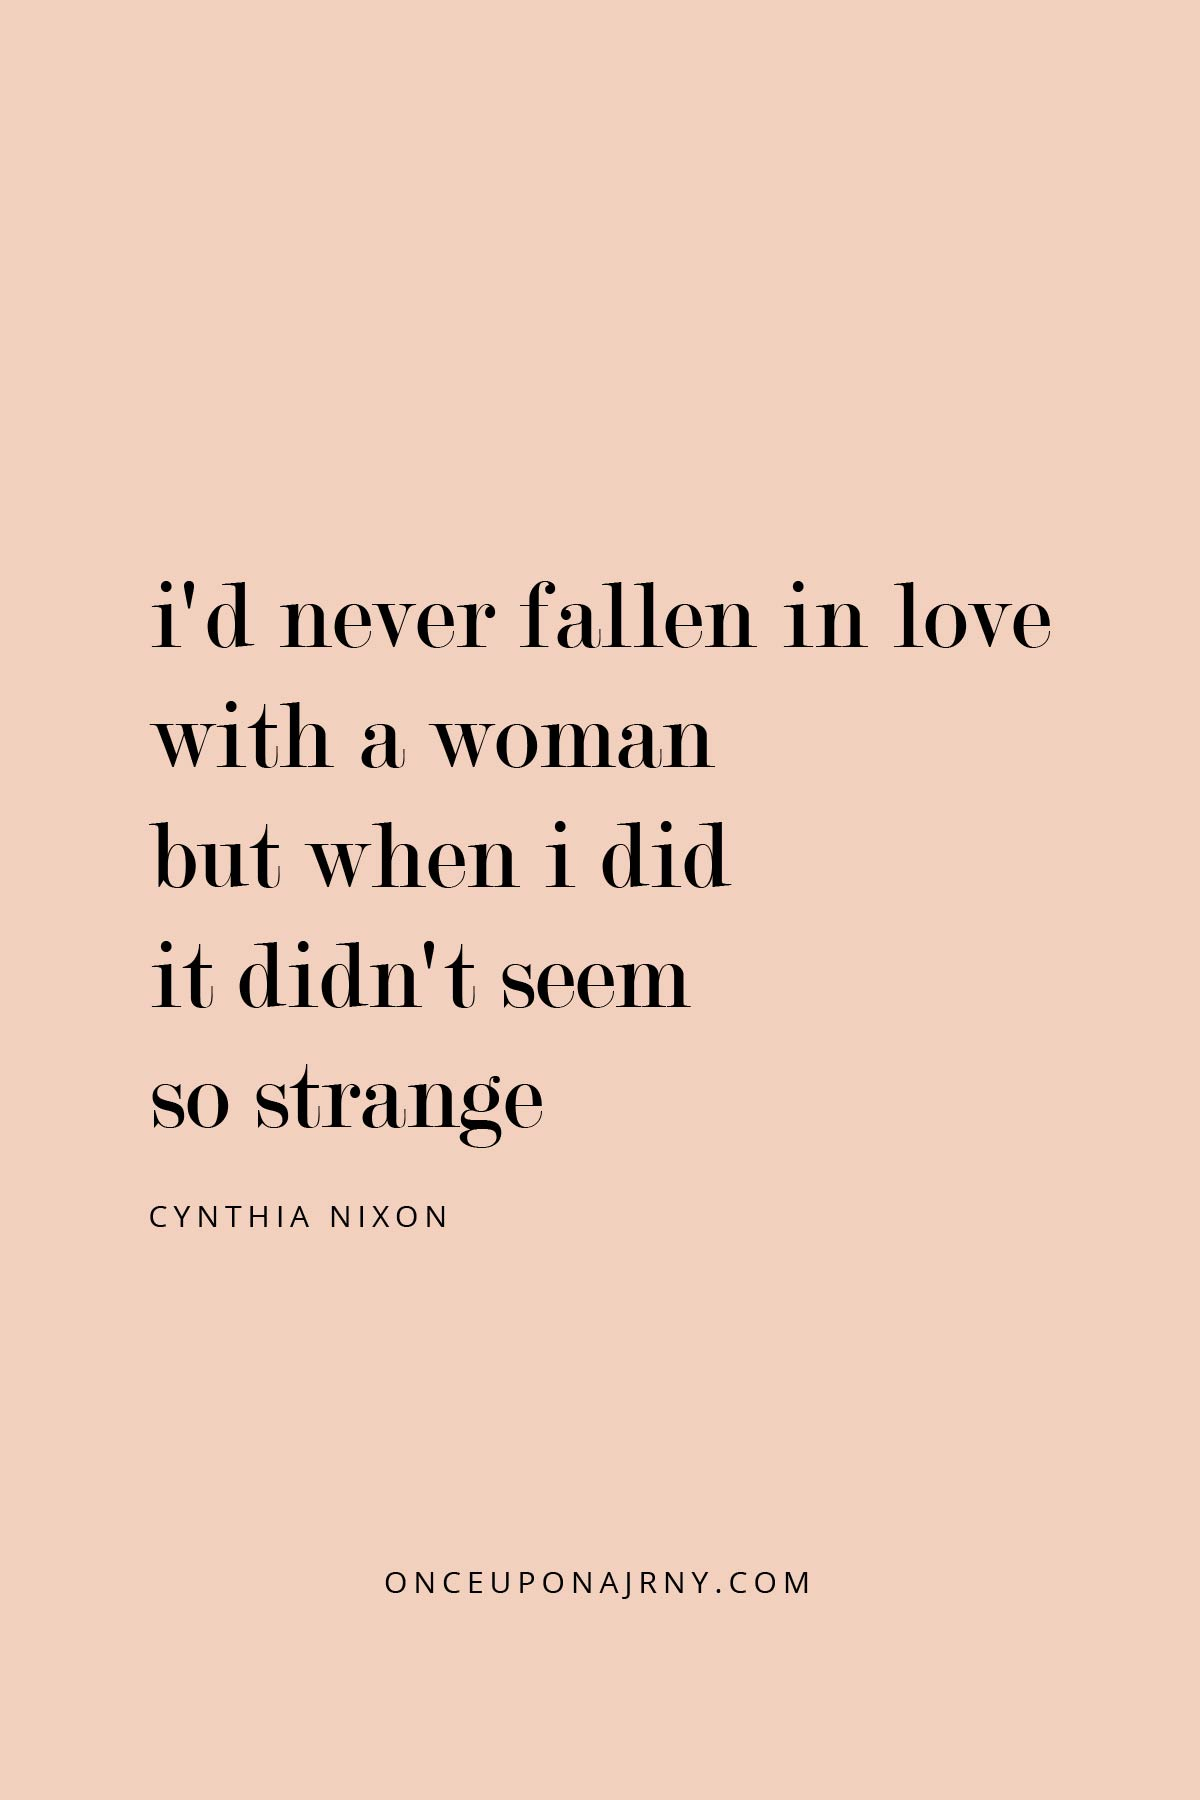 I'd never fallen in love with a woman. But when I did, it didn't seem so strange. - Cynthia Nixon queer quotes